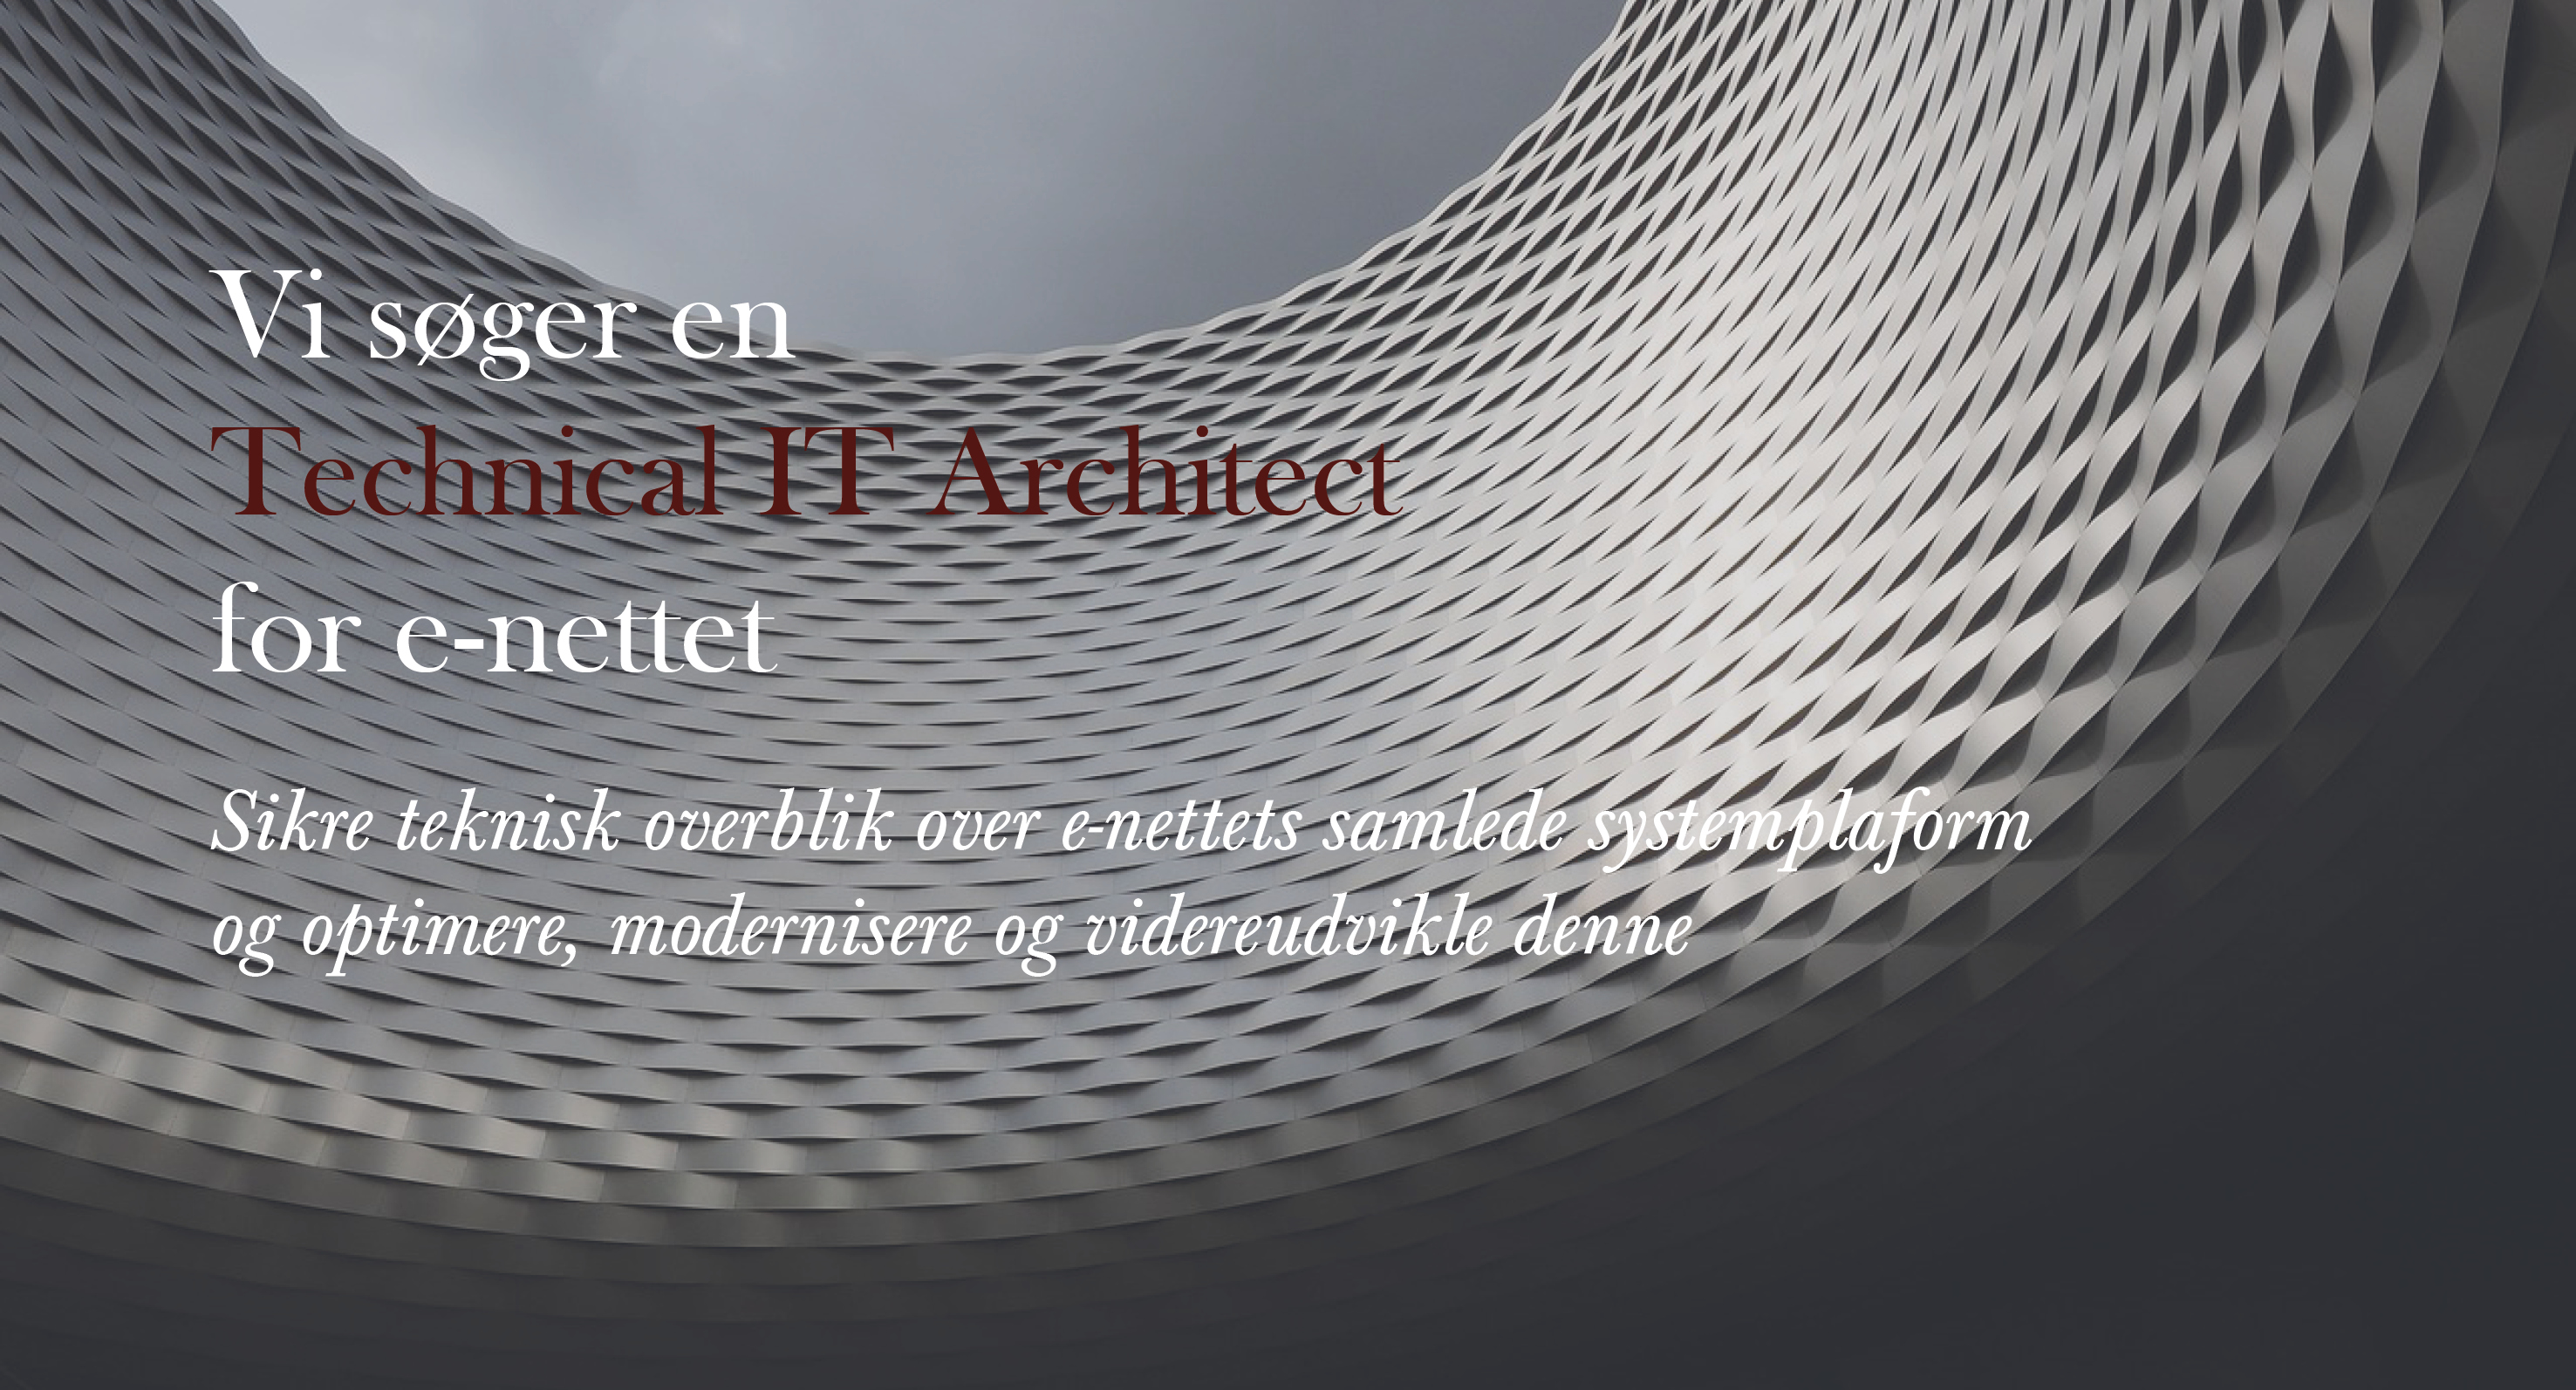 e-nettet - Technical IT Architect